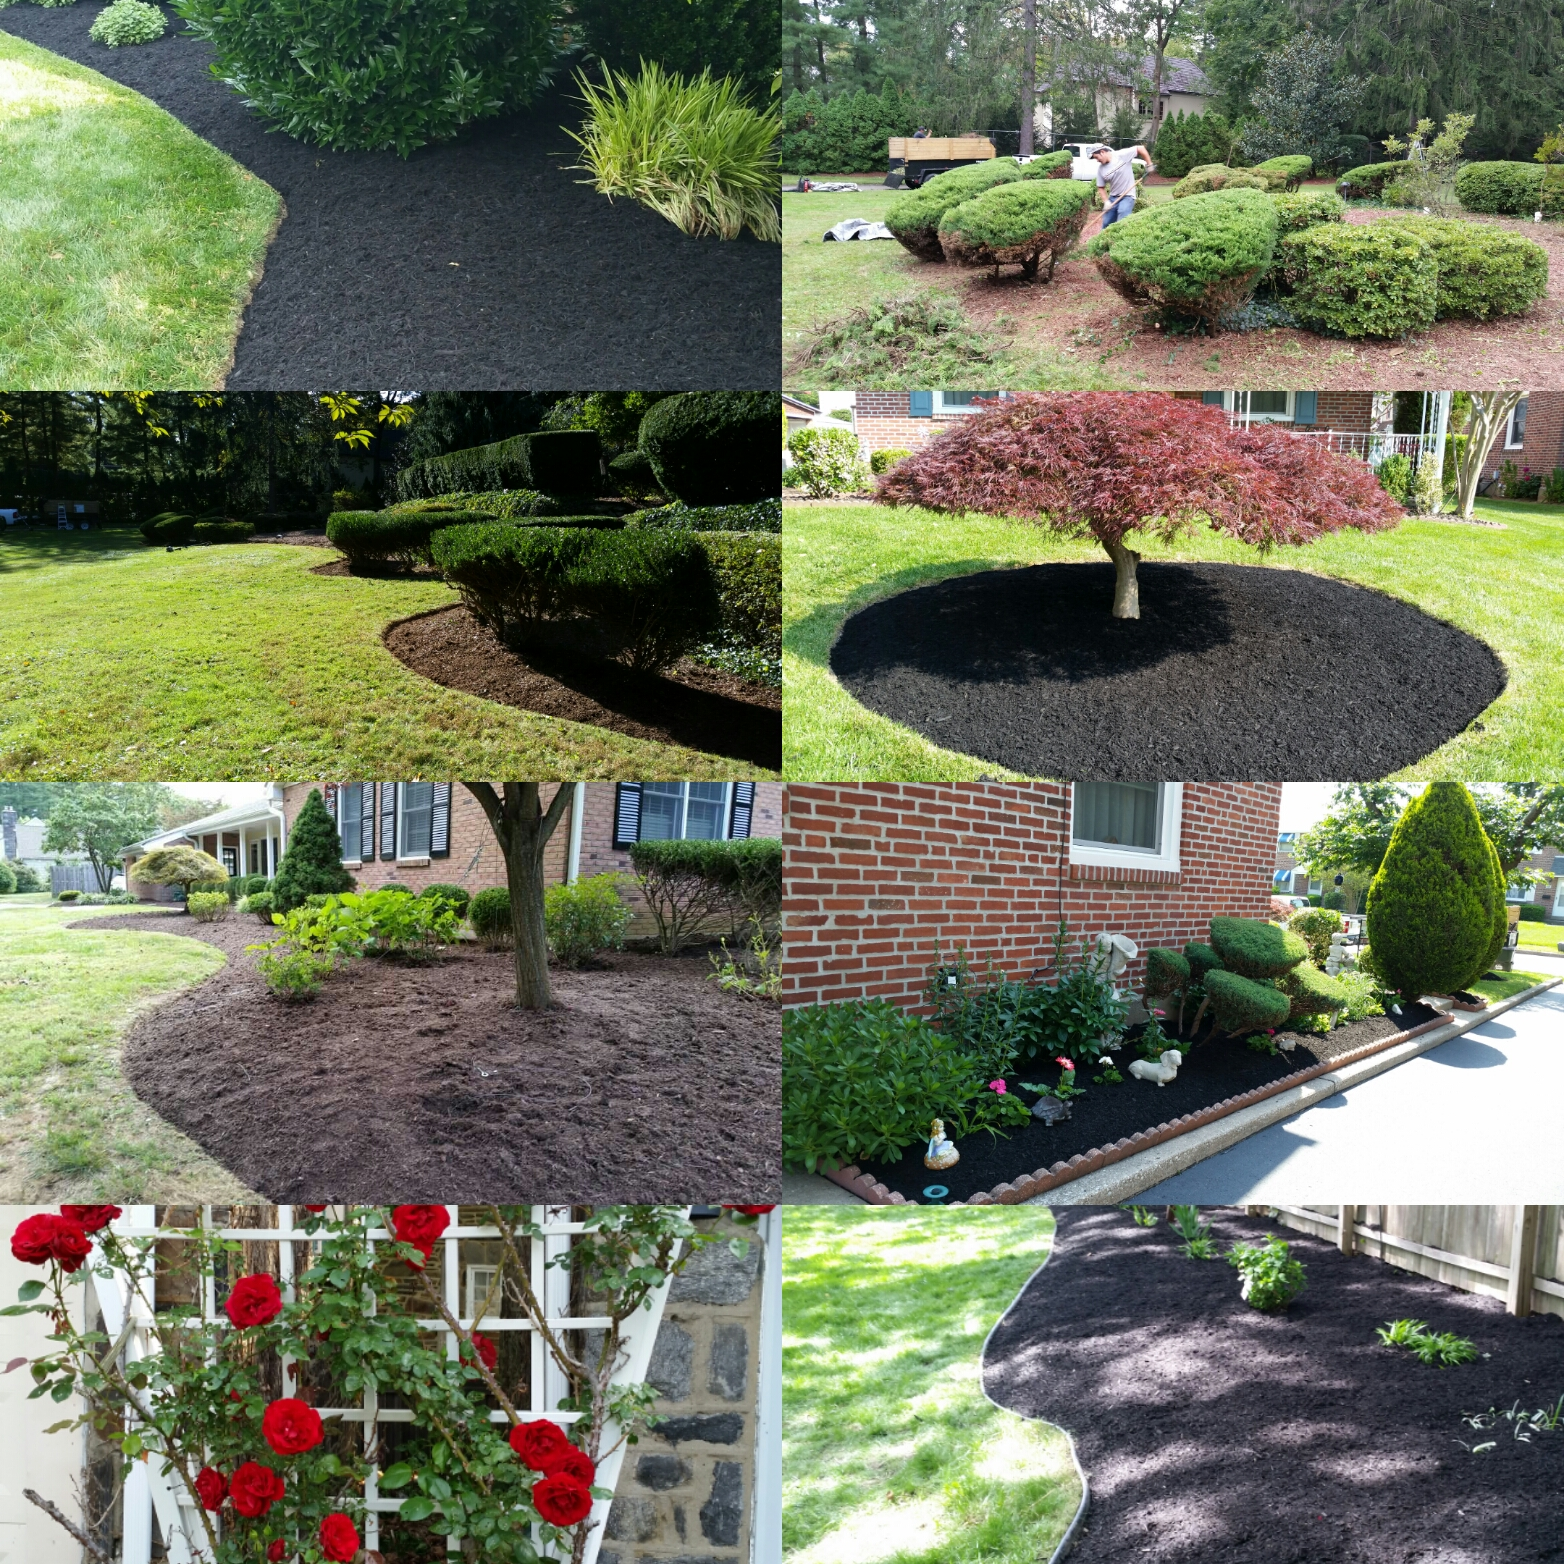 24 cozy landscaping company names images landscape ideas for Landscaping company name ideas